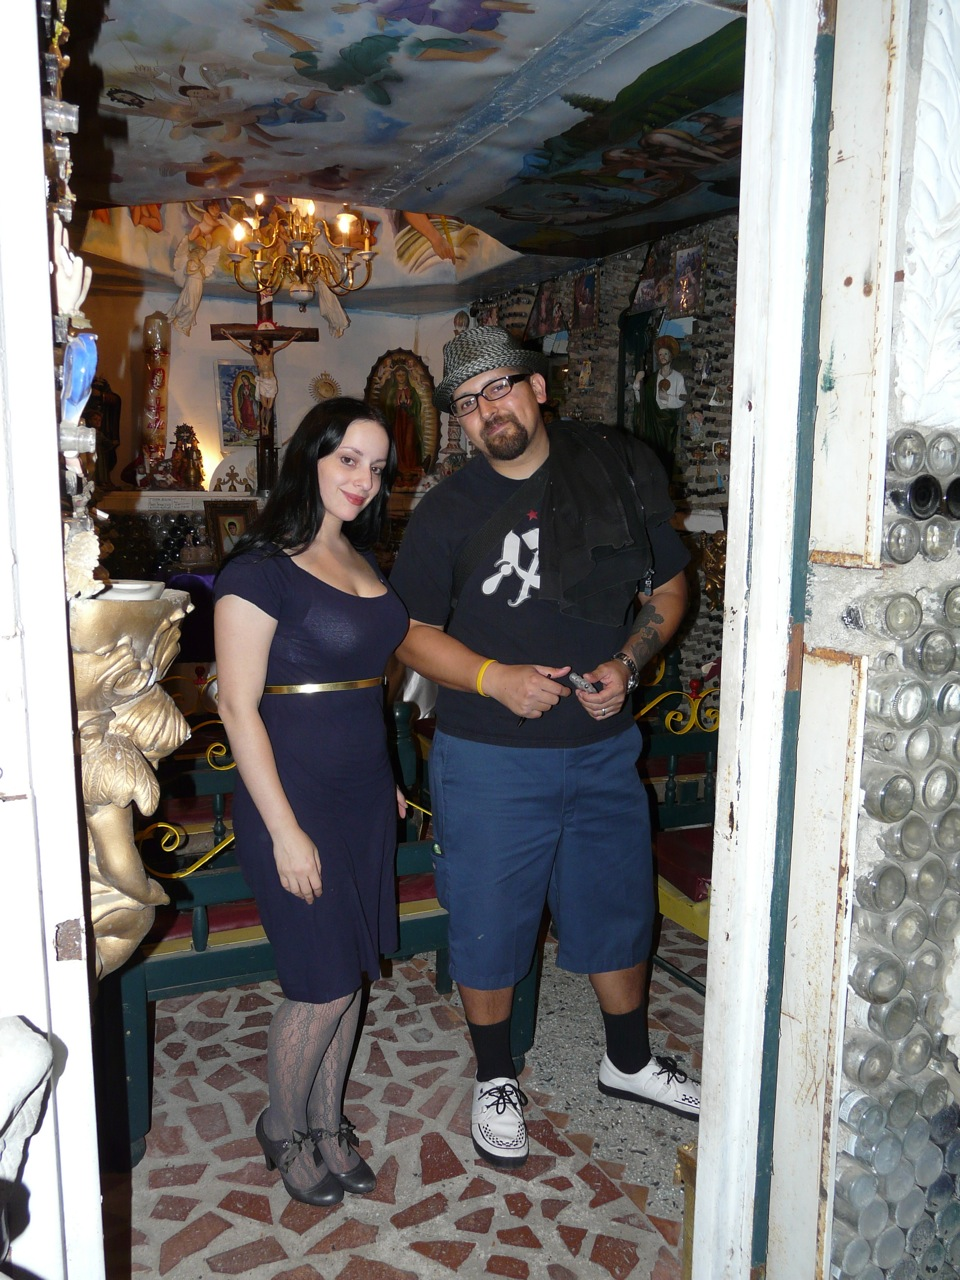 Molly Crabapple, KMNDZ in weird shrine/church